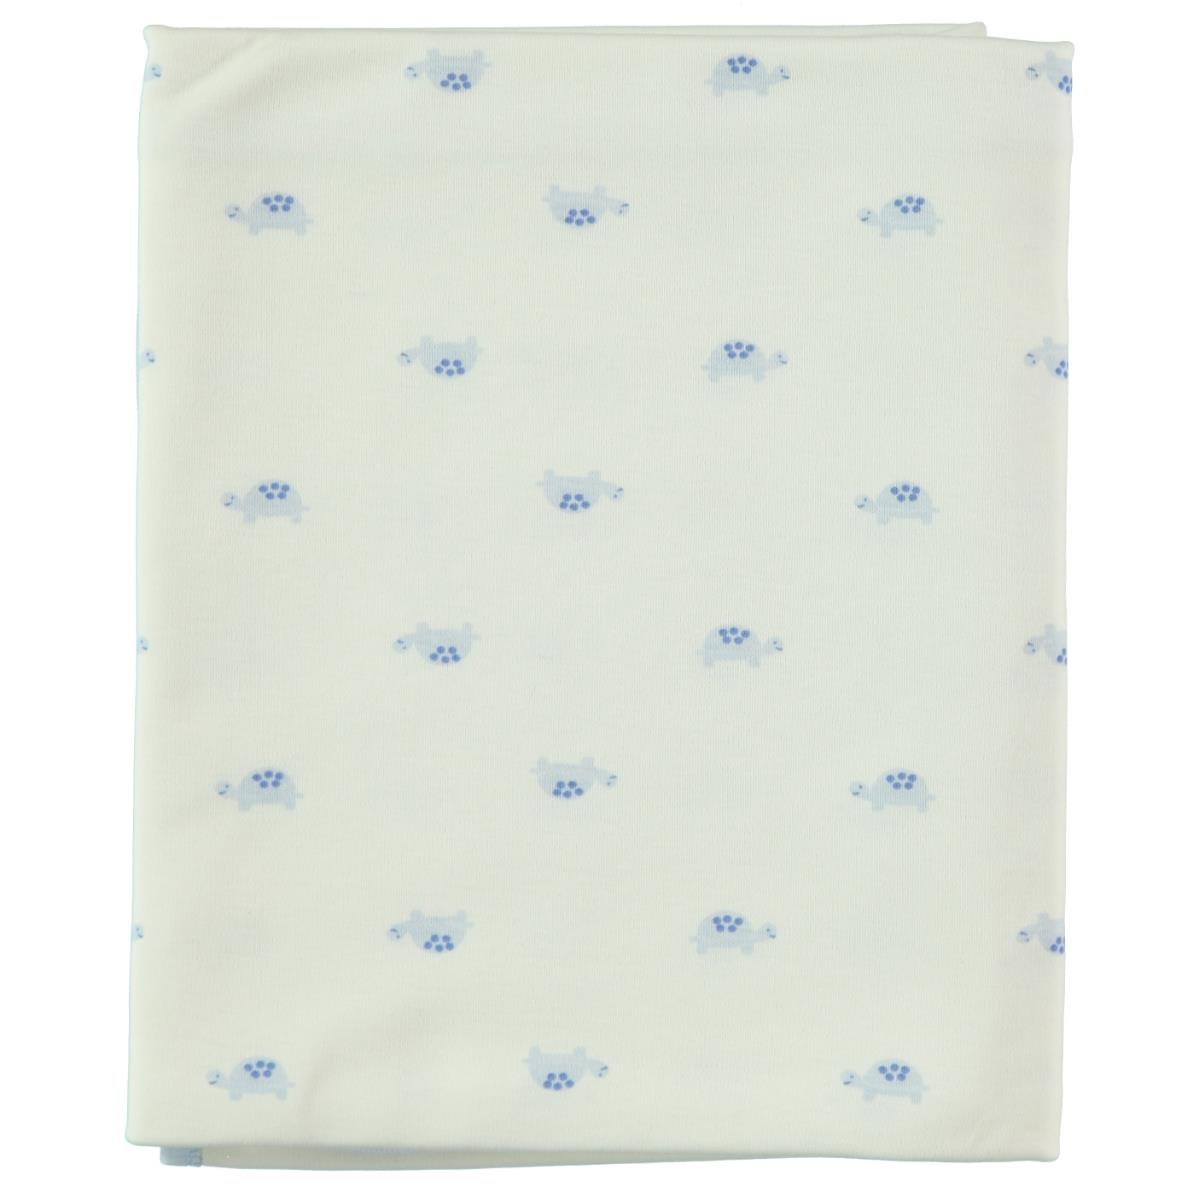 Civil Baby baby double layer Blanket Blue 80x90 Cm